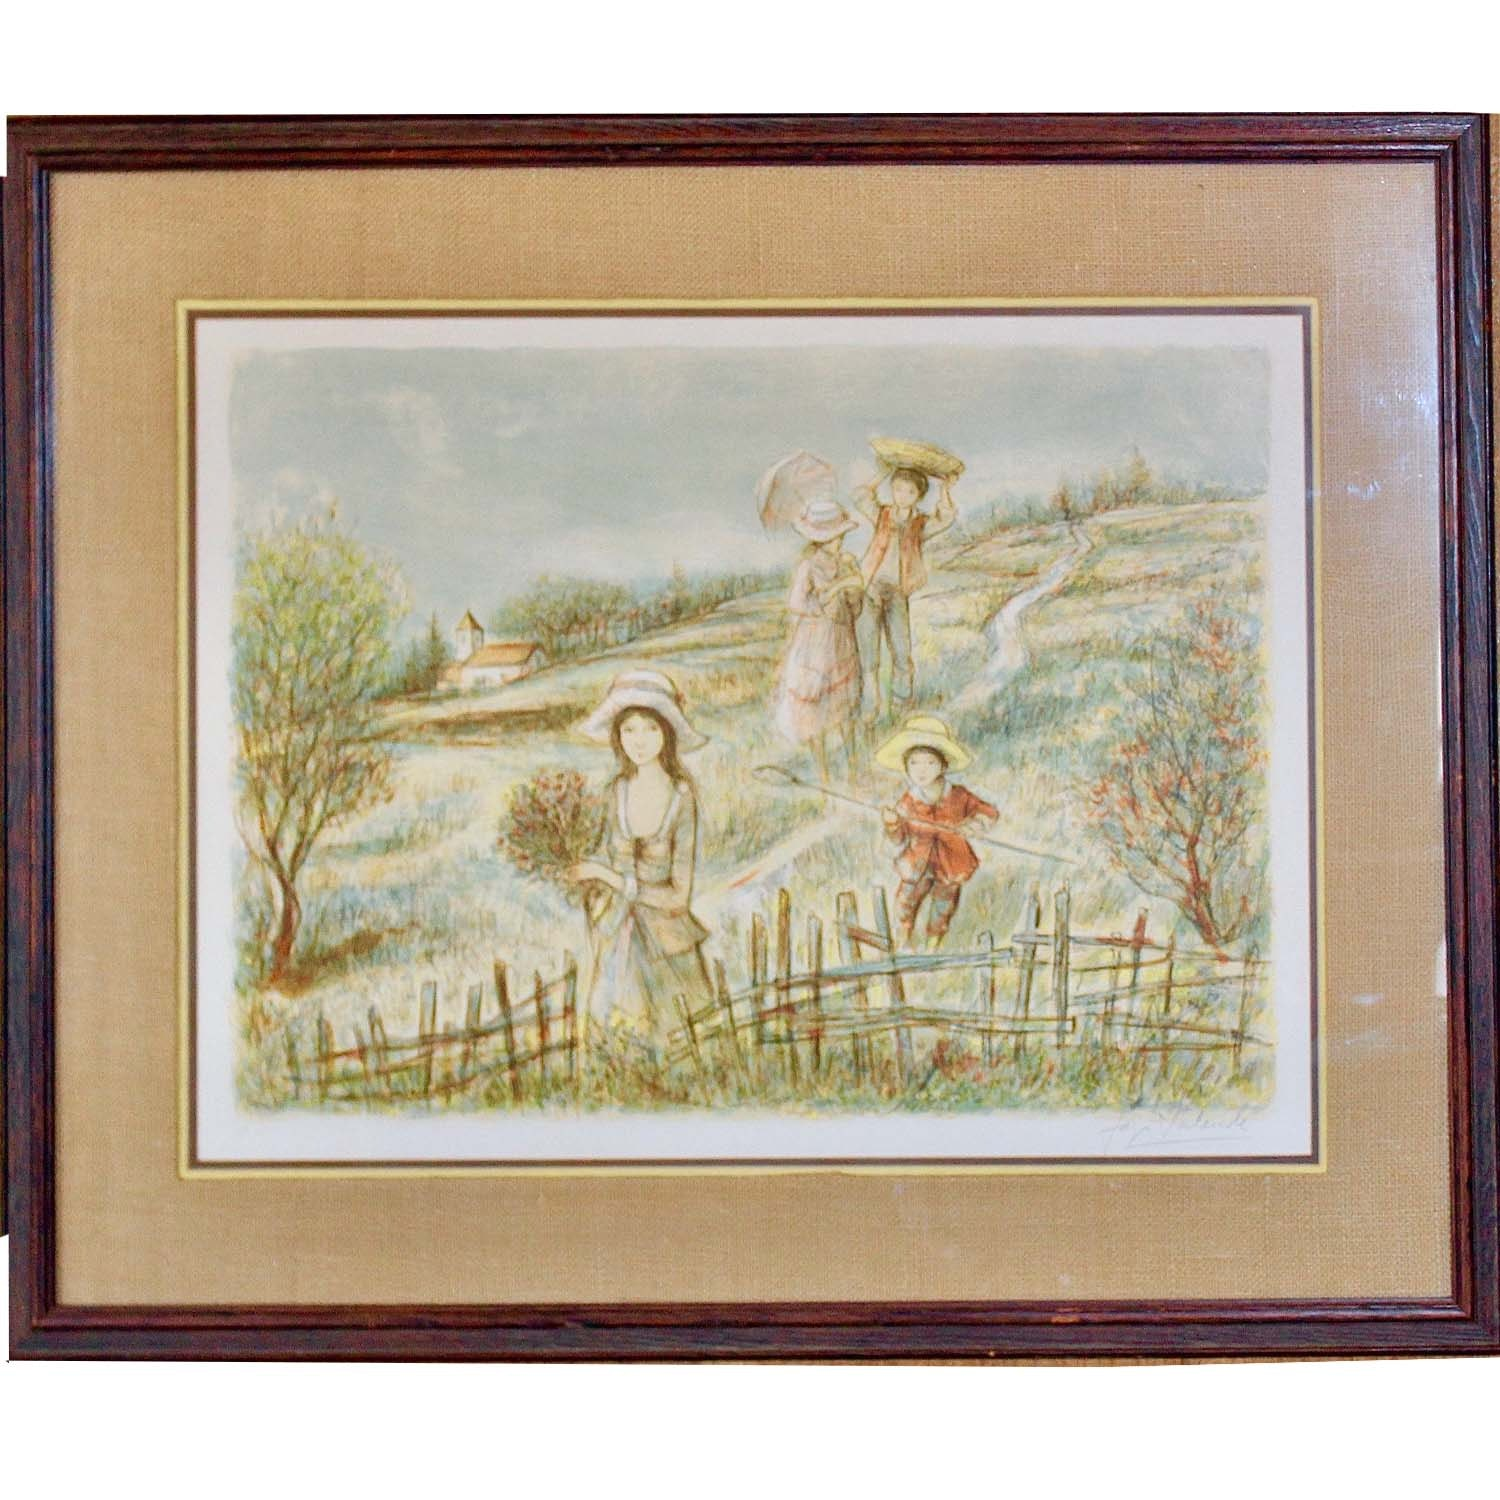 """Signed Jacques Lalande Limited Edition Lithograph """"Strolling in the Meadow"""""""